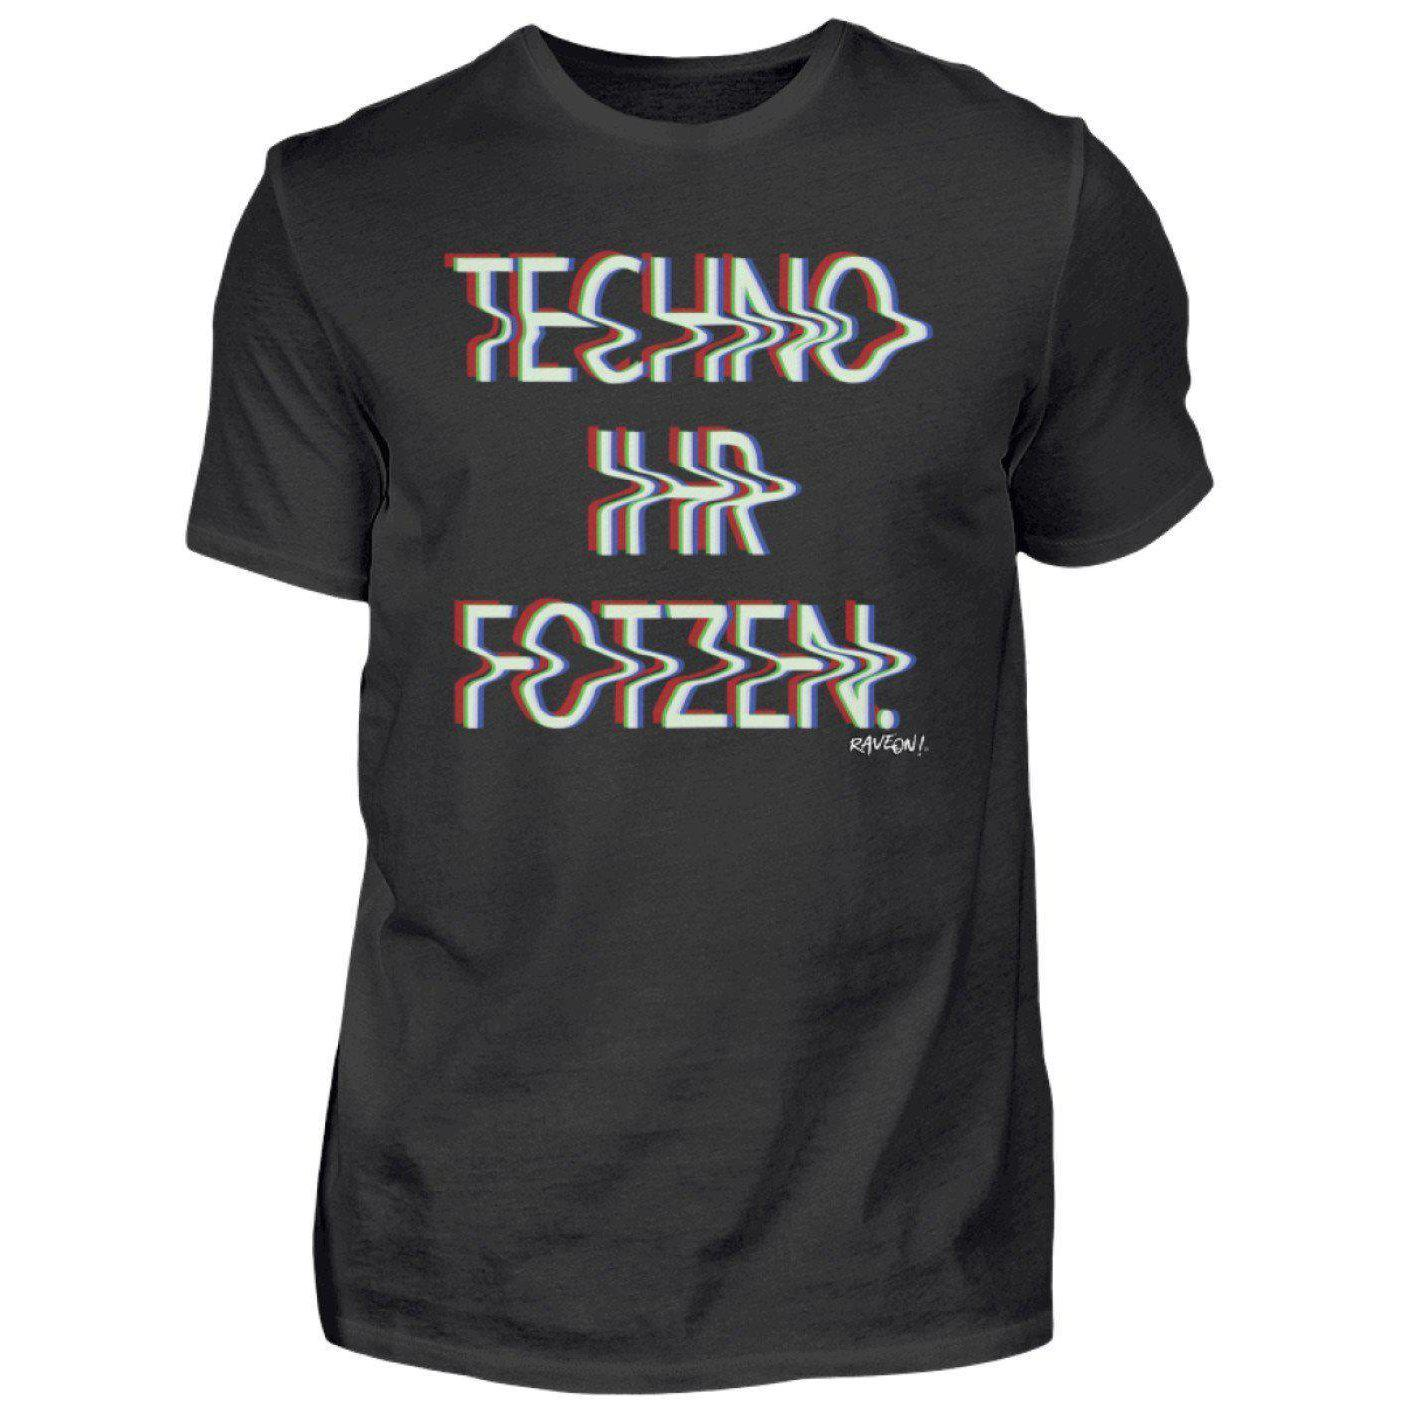 Techno Ihr F*tzen - Rave On!® - Herren Shirt-Herren Basic T-Shirt-Schwarz-S-Rave-On! I www.rave-on.shop I Deine Rave & Techno Szene Shop I apparel, Design - Techno Ihr F - Rave On!®, fotze, fotzen, i heart raves, On!®, rave, rave apparel, rave clothes, rave clothing, rave fashion, rave gear, rave on, Rave On!®, rave shop, rave wear, raver, techno apparel, ® - Sexy Festival Streetwear , Clubwear & Raver Style